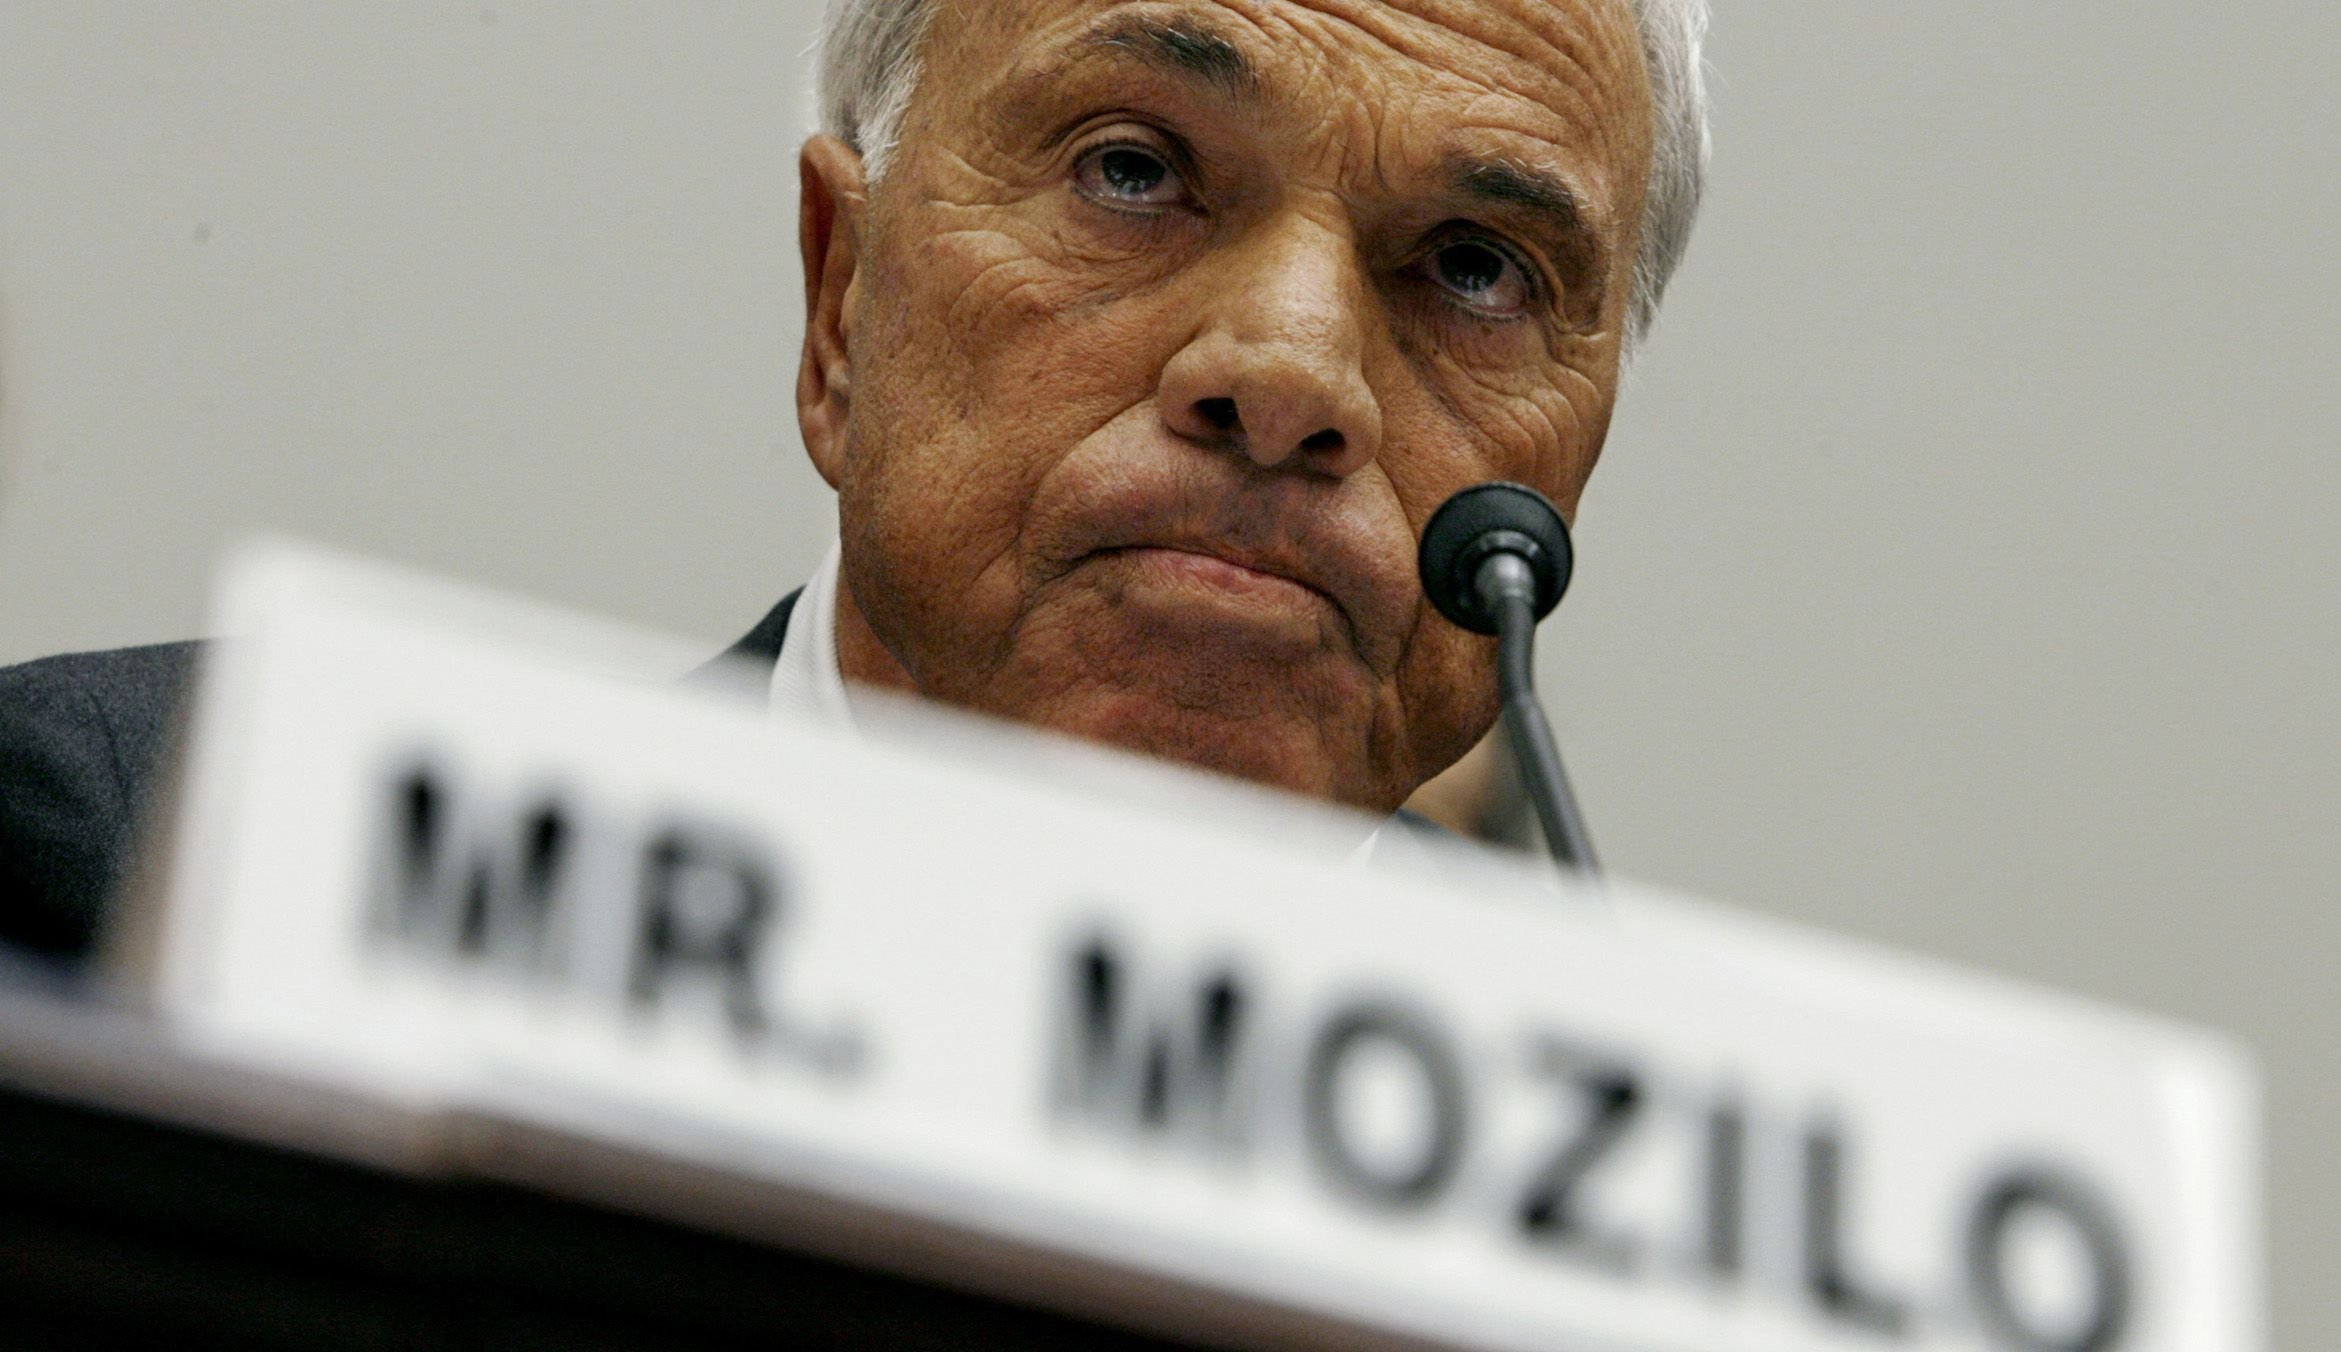 Countrywide Financial  Corporation founder and CEO Angelo Mozilo testifies before the House Committee on Oversight and Government Reform on Capitol Hill in Washington in this March 7, 2008 file photo. U.S. stock regulators filed a civil lawsuit in Los Angeles June 4, 2009, accusing Mozilo, former Countrywide President David Sambol and former Chief Financial Officer Eric Sieracki of misleading investors about credit risks taken to build and maintain the lender's market share. REUTERS/Kevin Lamarque/Files              (UNITED STATES POLITICS BUSINESS) - RTR24AK0